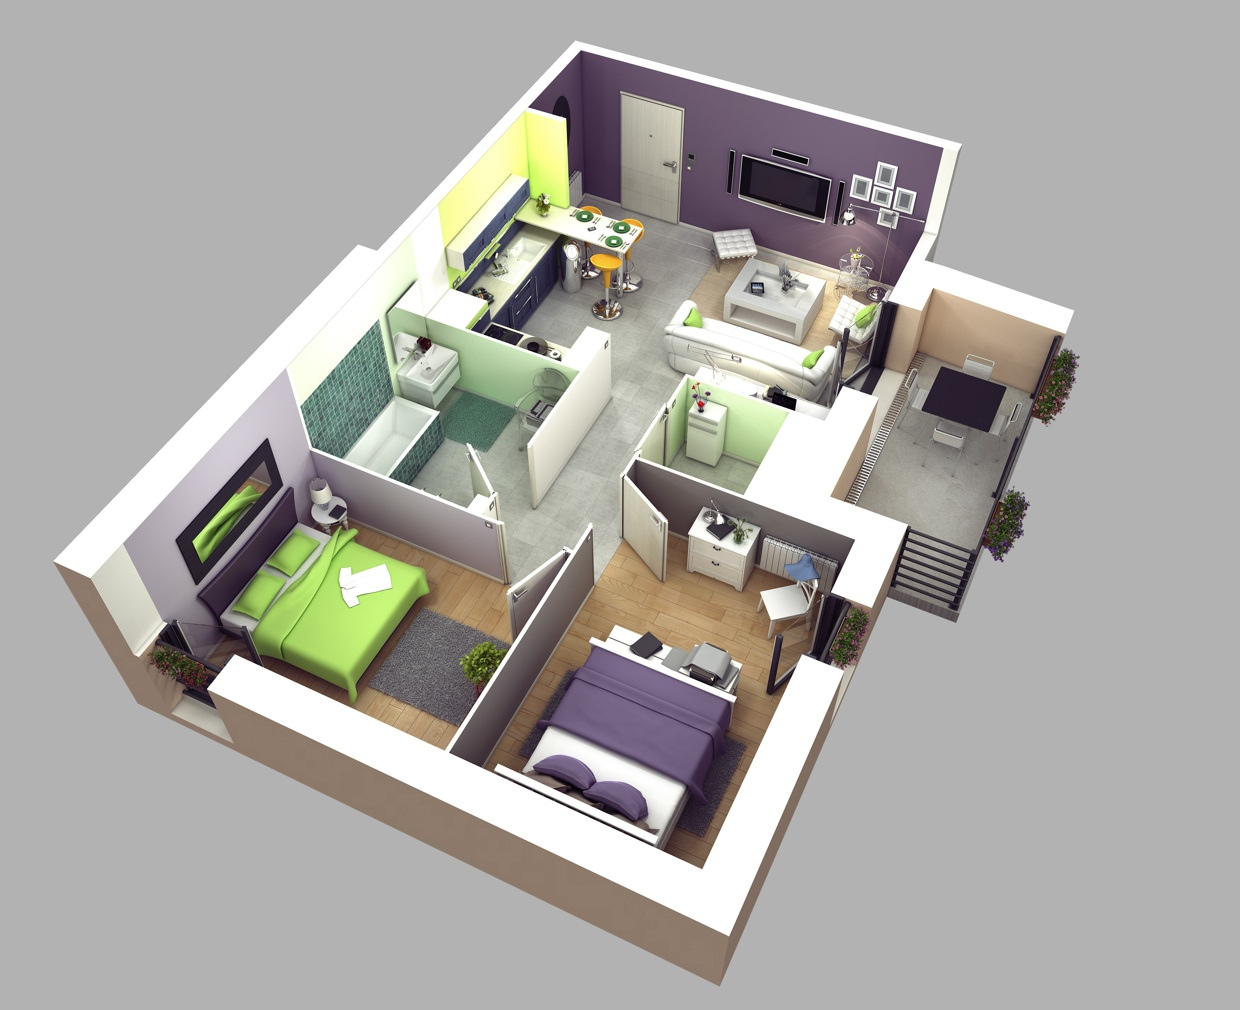 2 Bedroom Home Design Of 2 Bedroom Apartment House Plans